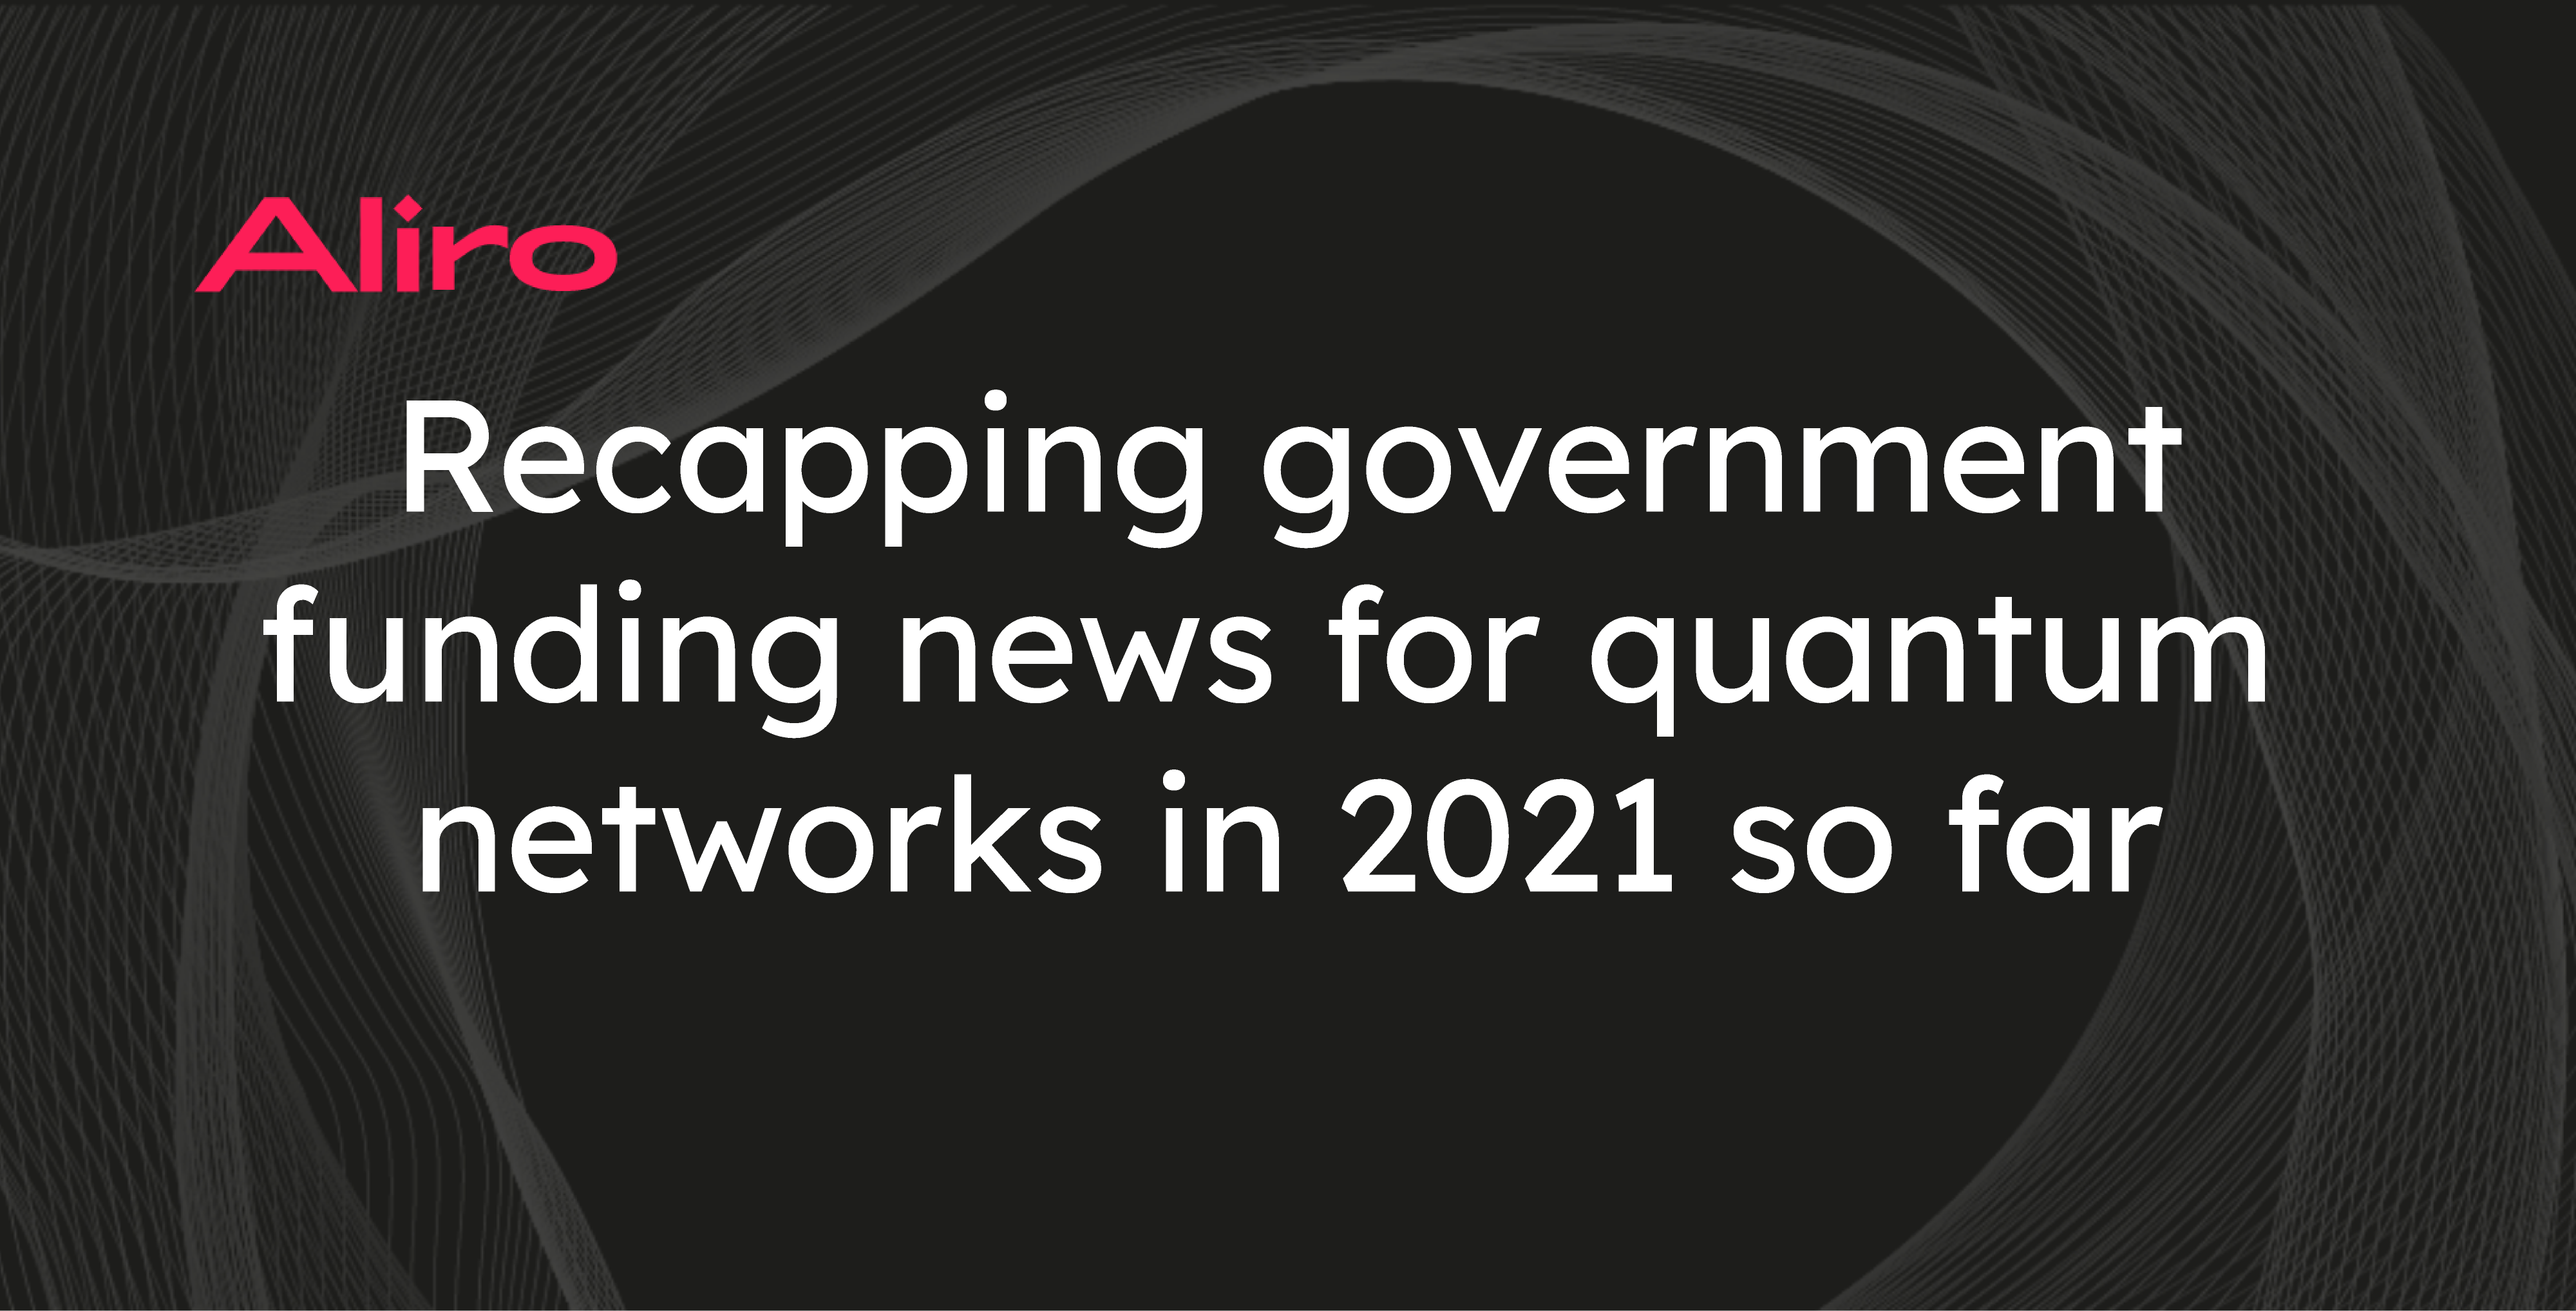 Recapping government funding news for quantum networks in 2021 so far